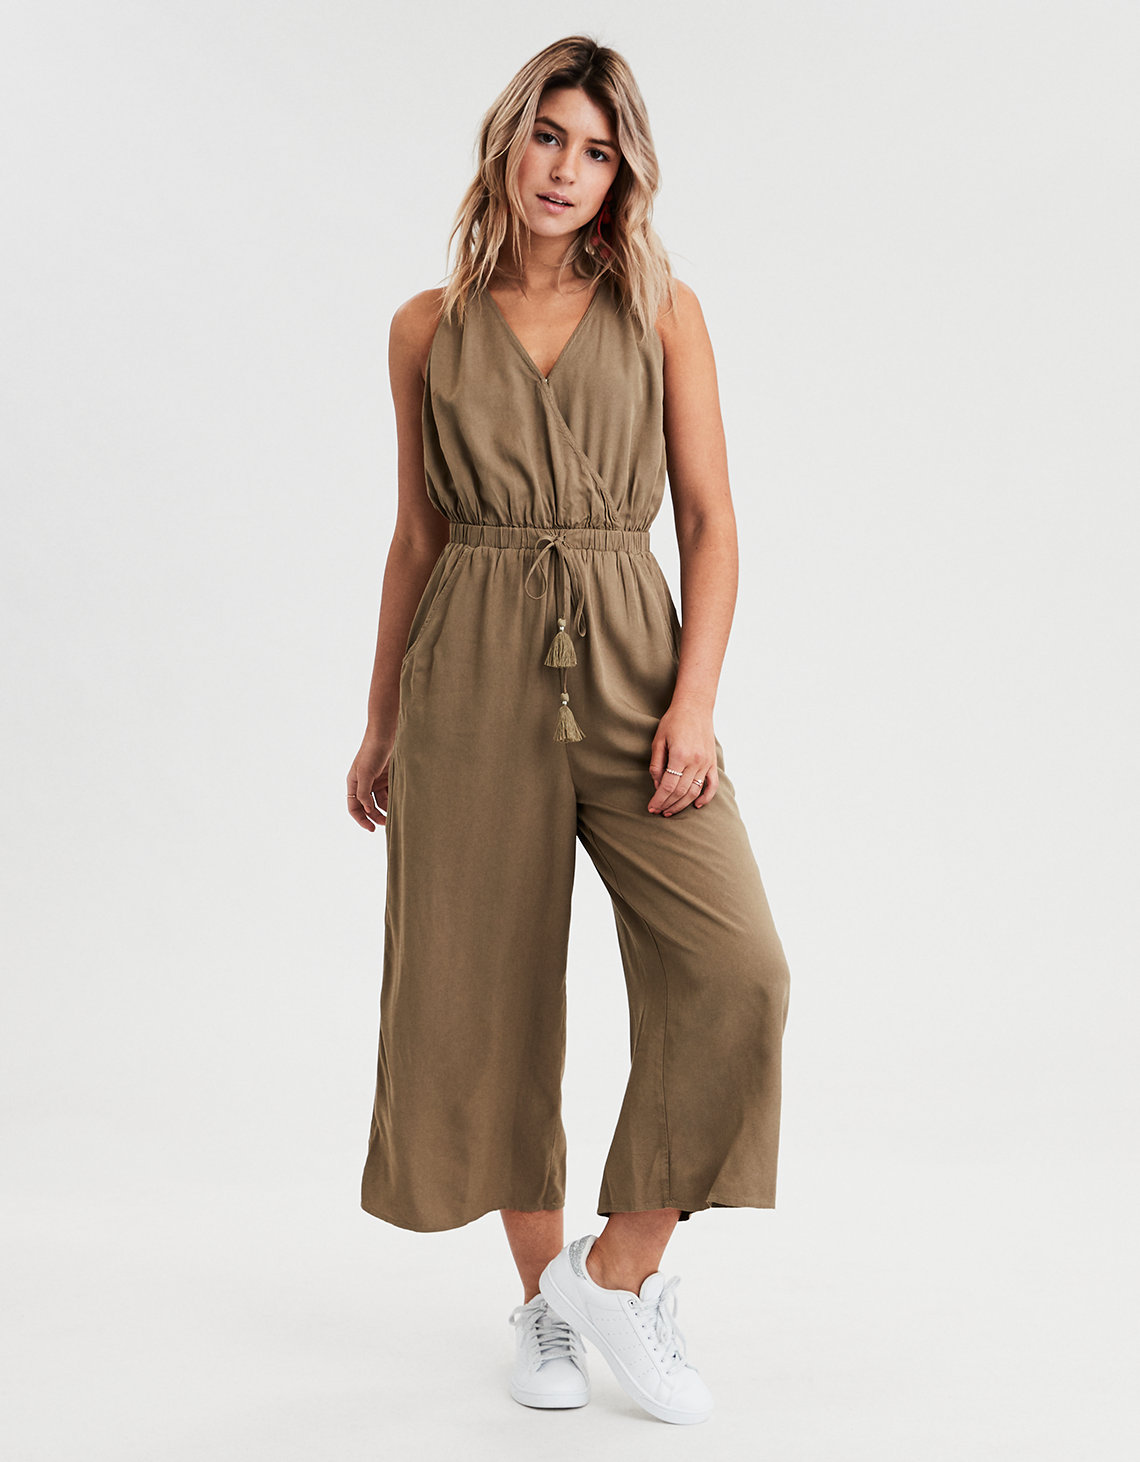 19f9063f6e0 AE Jumpsuit. Placeholder image. Product Image